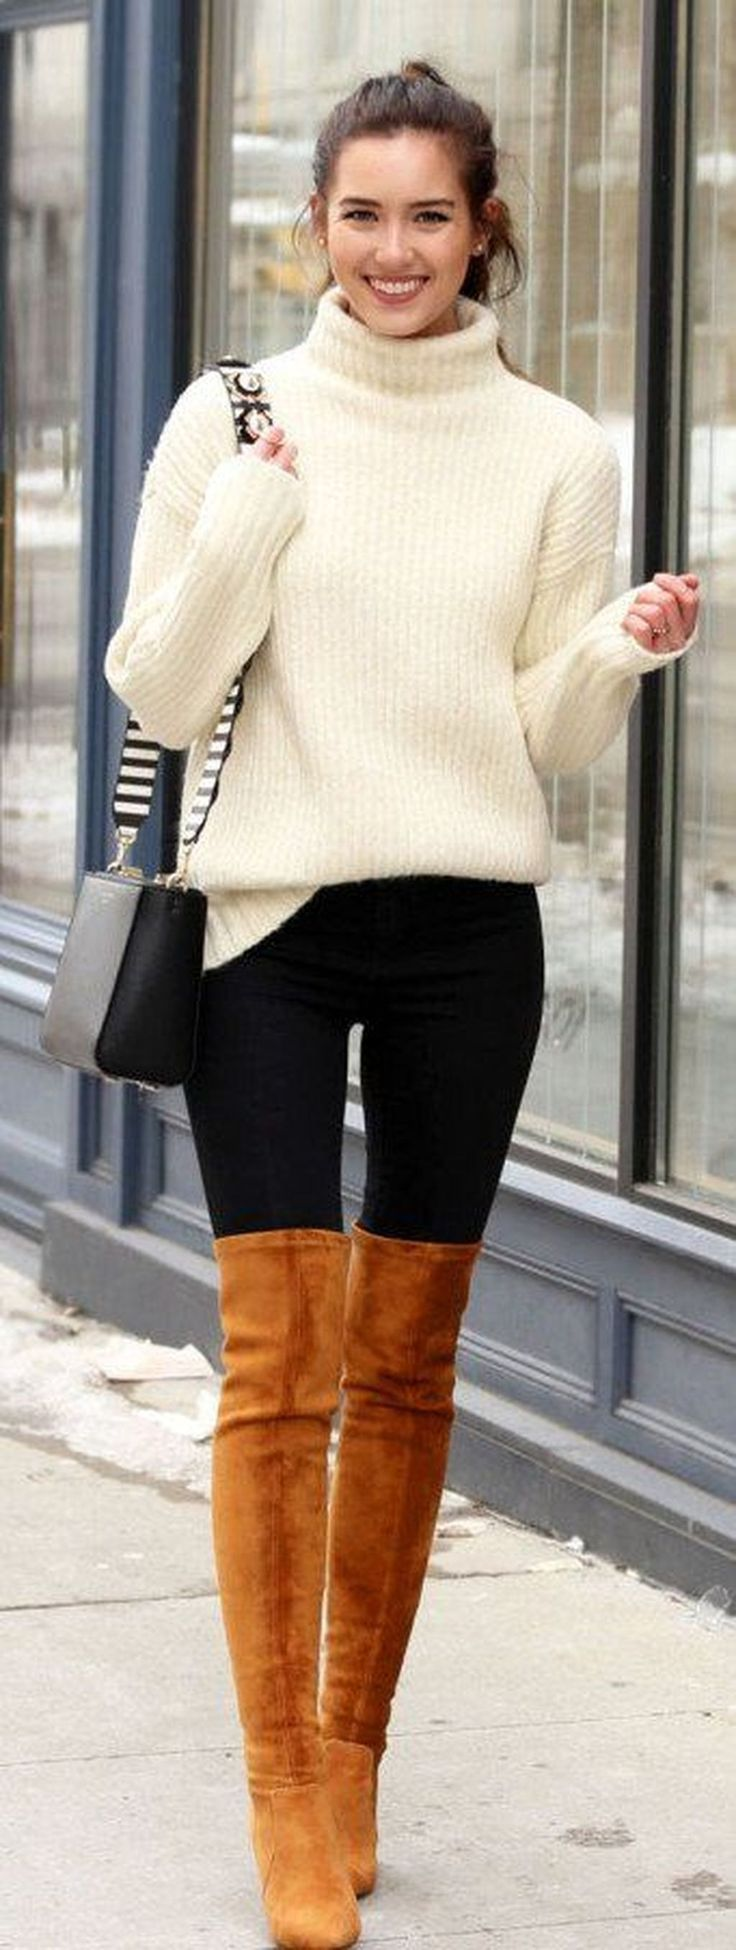 best 25+ women's cool outfits ideas on pinterest | cool nikes